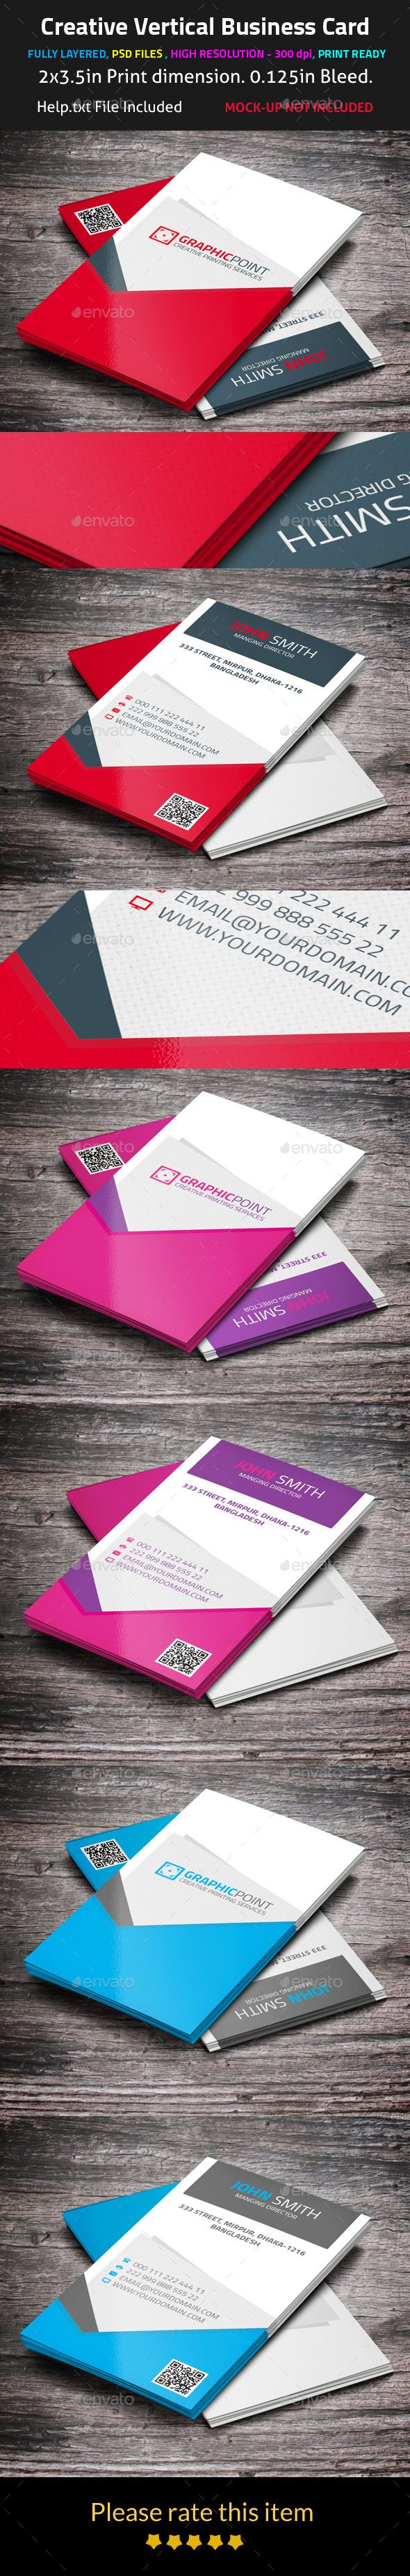 Best 25 Vertical business cards ideas on Pinterest